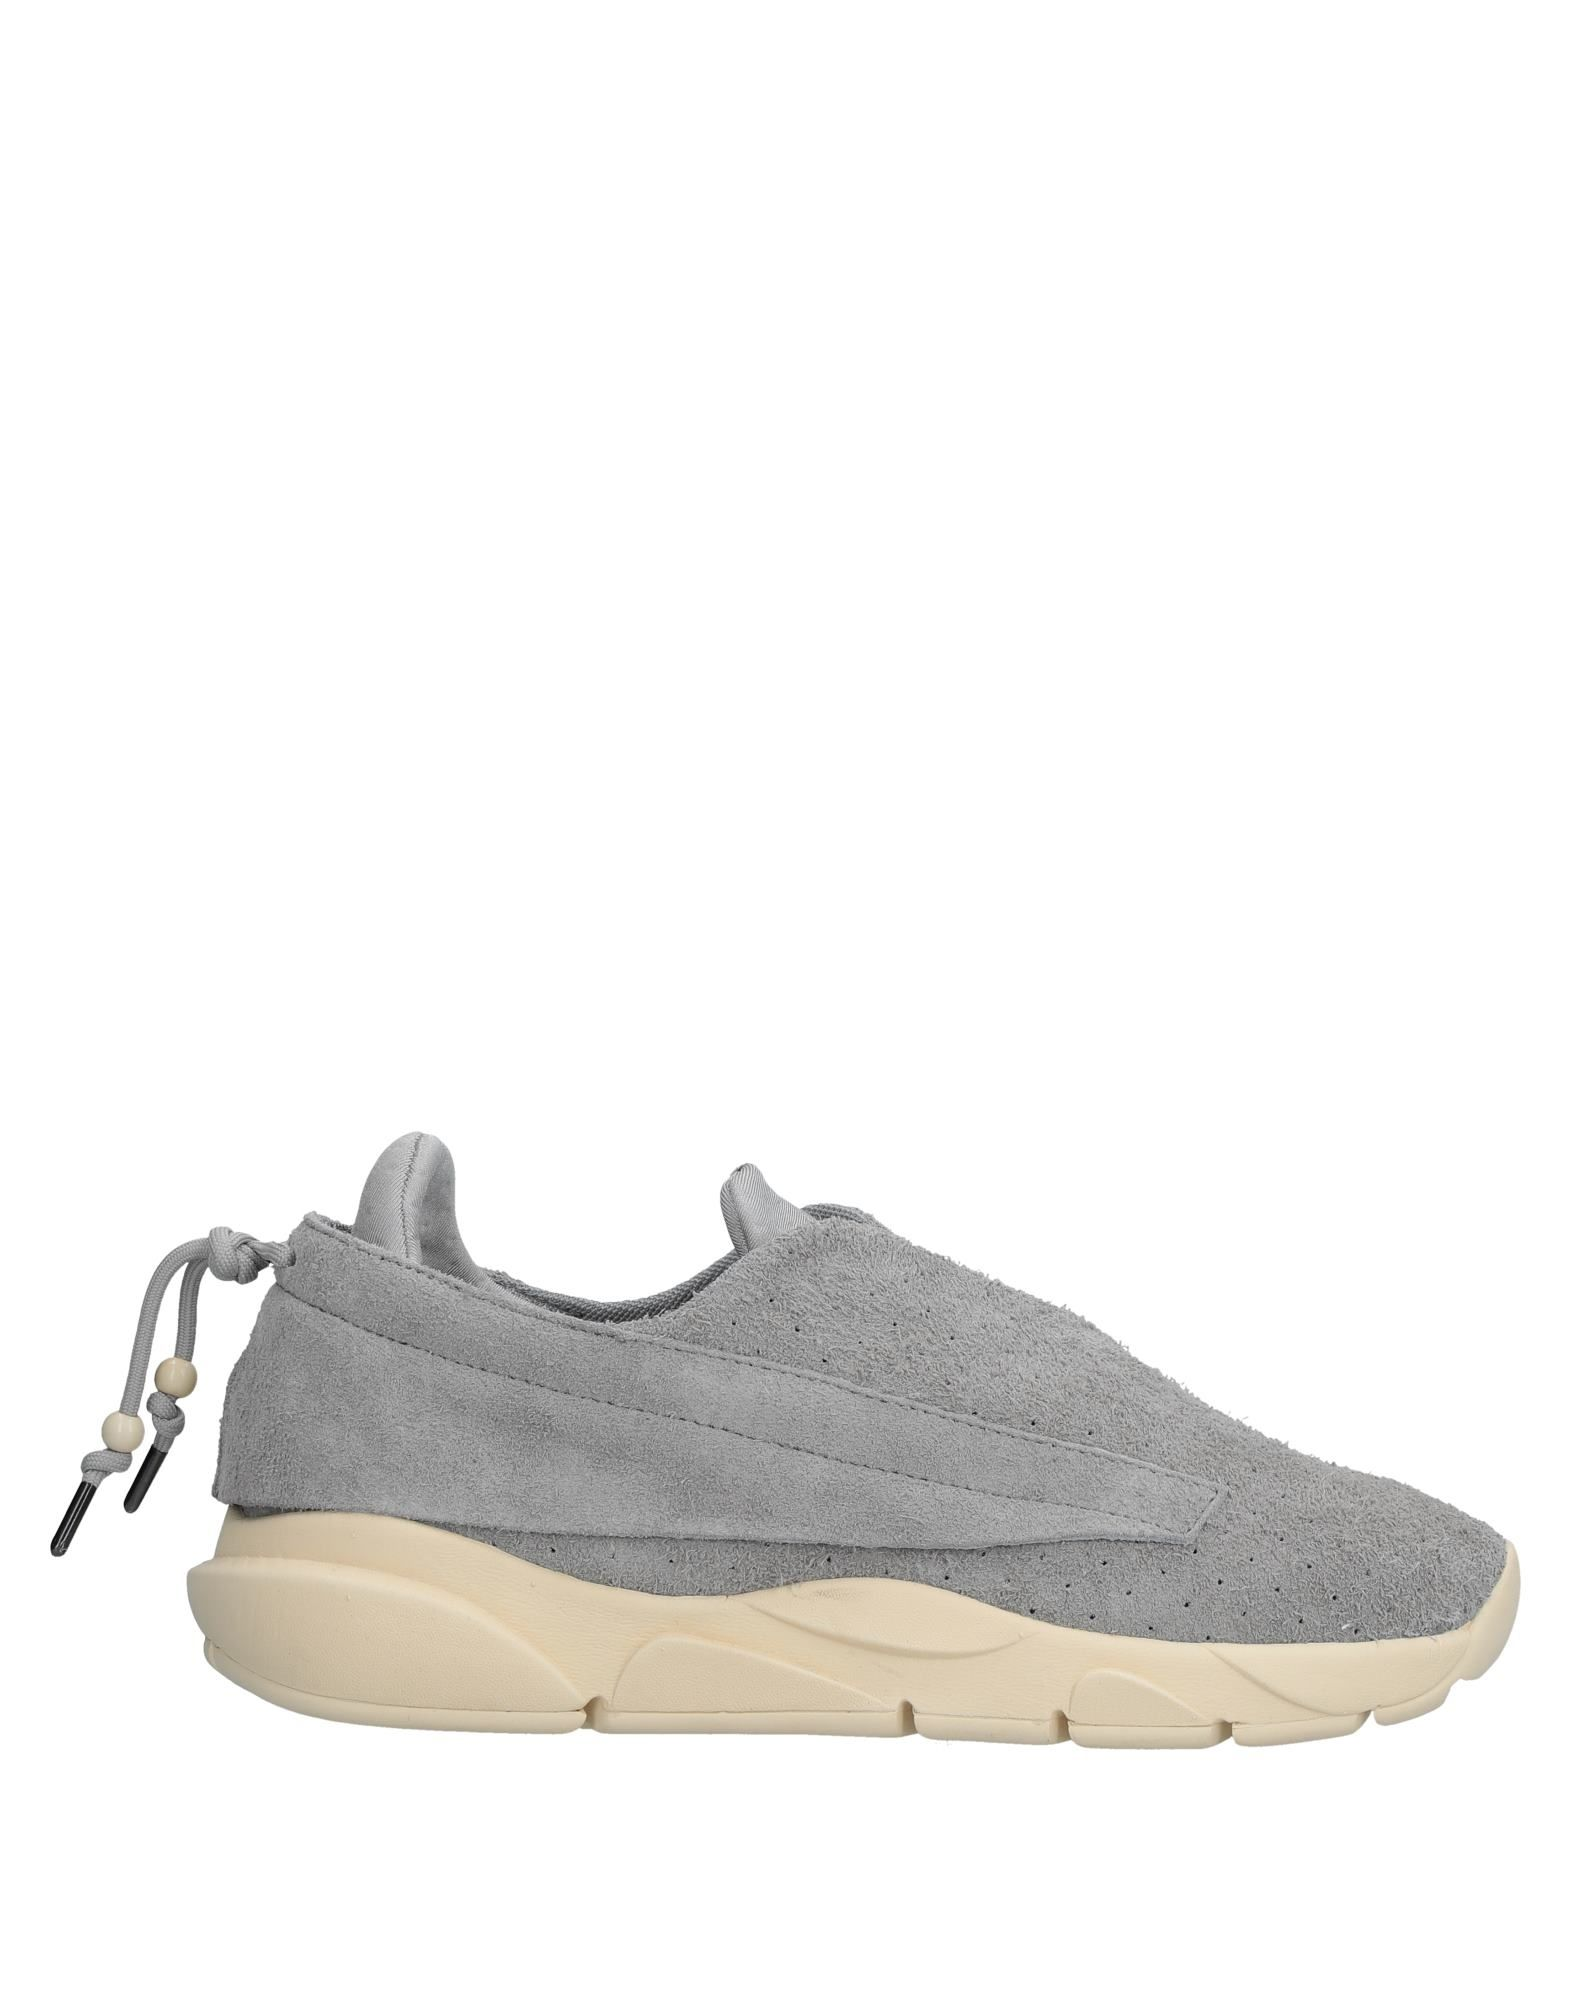 CLEAR WEATHER Sneakers in Grey